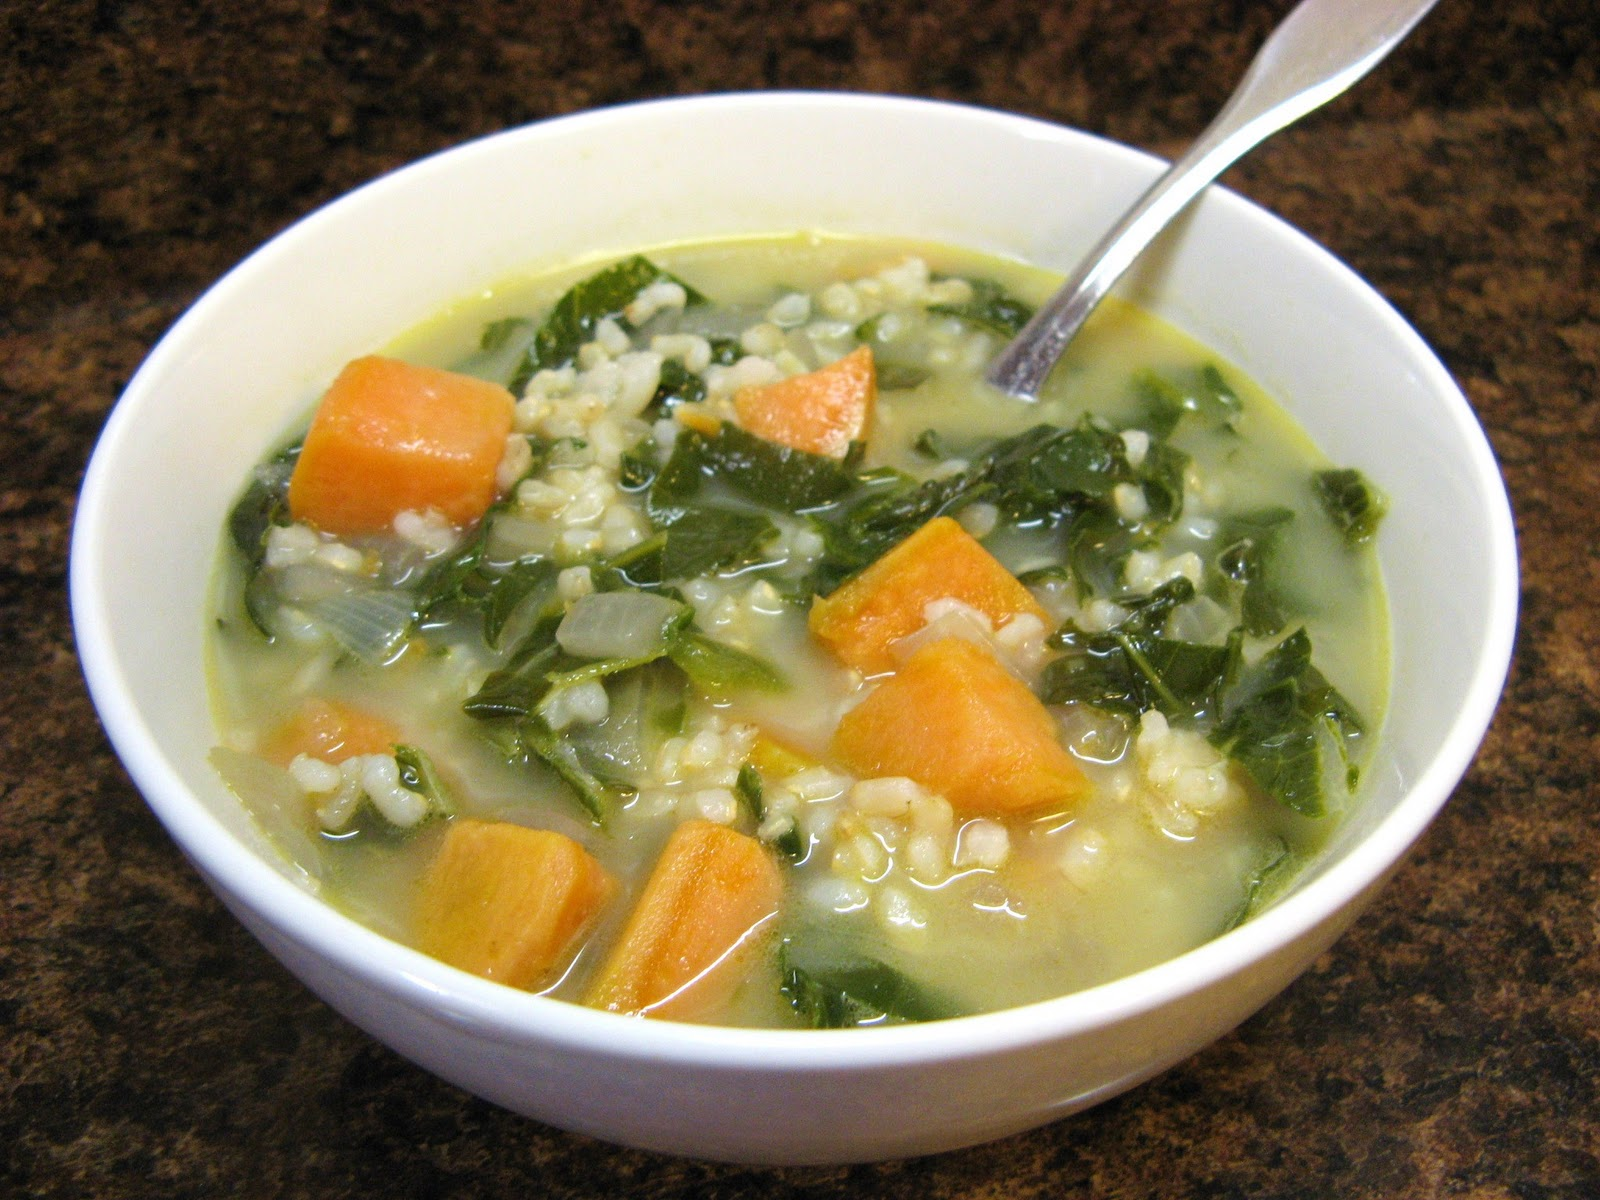 The Well-Fed Newlyweds: Island Kale and Sweet Potato Soup